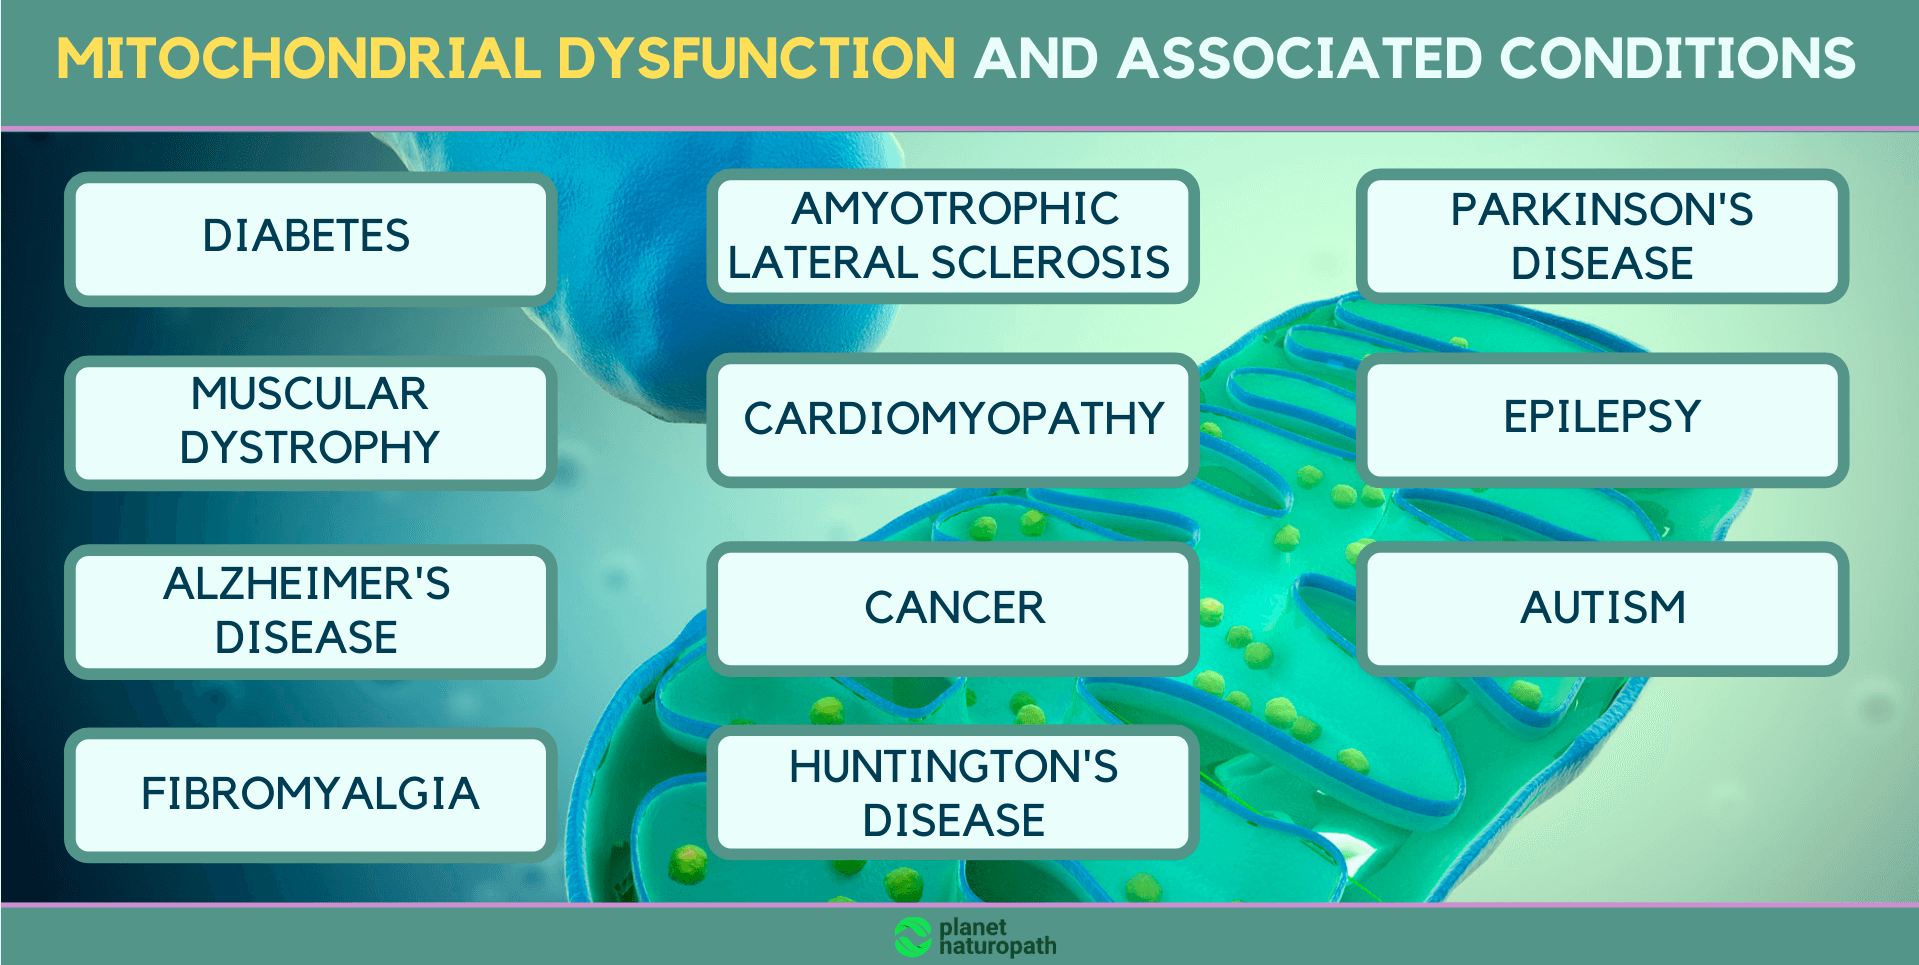 Mitochondrial-dysfunction-and-associated-conditions